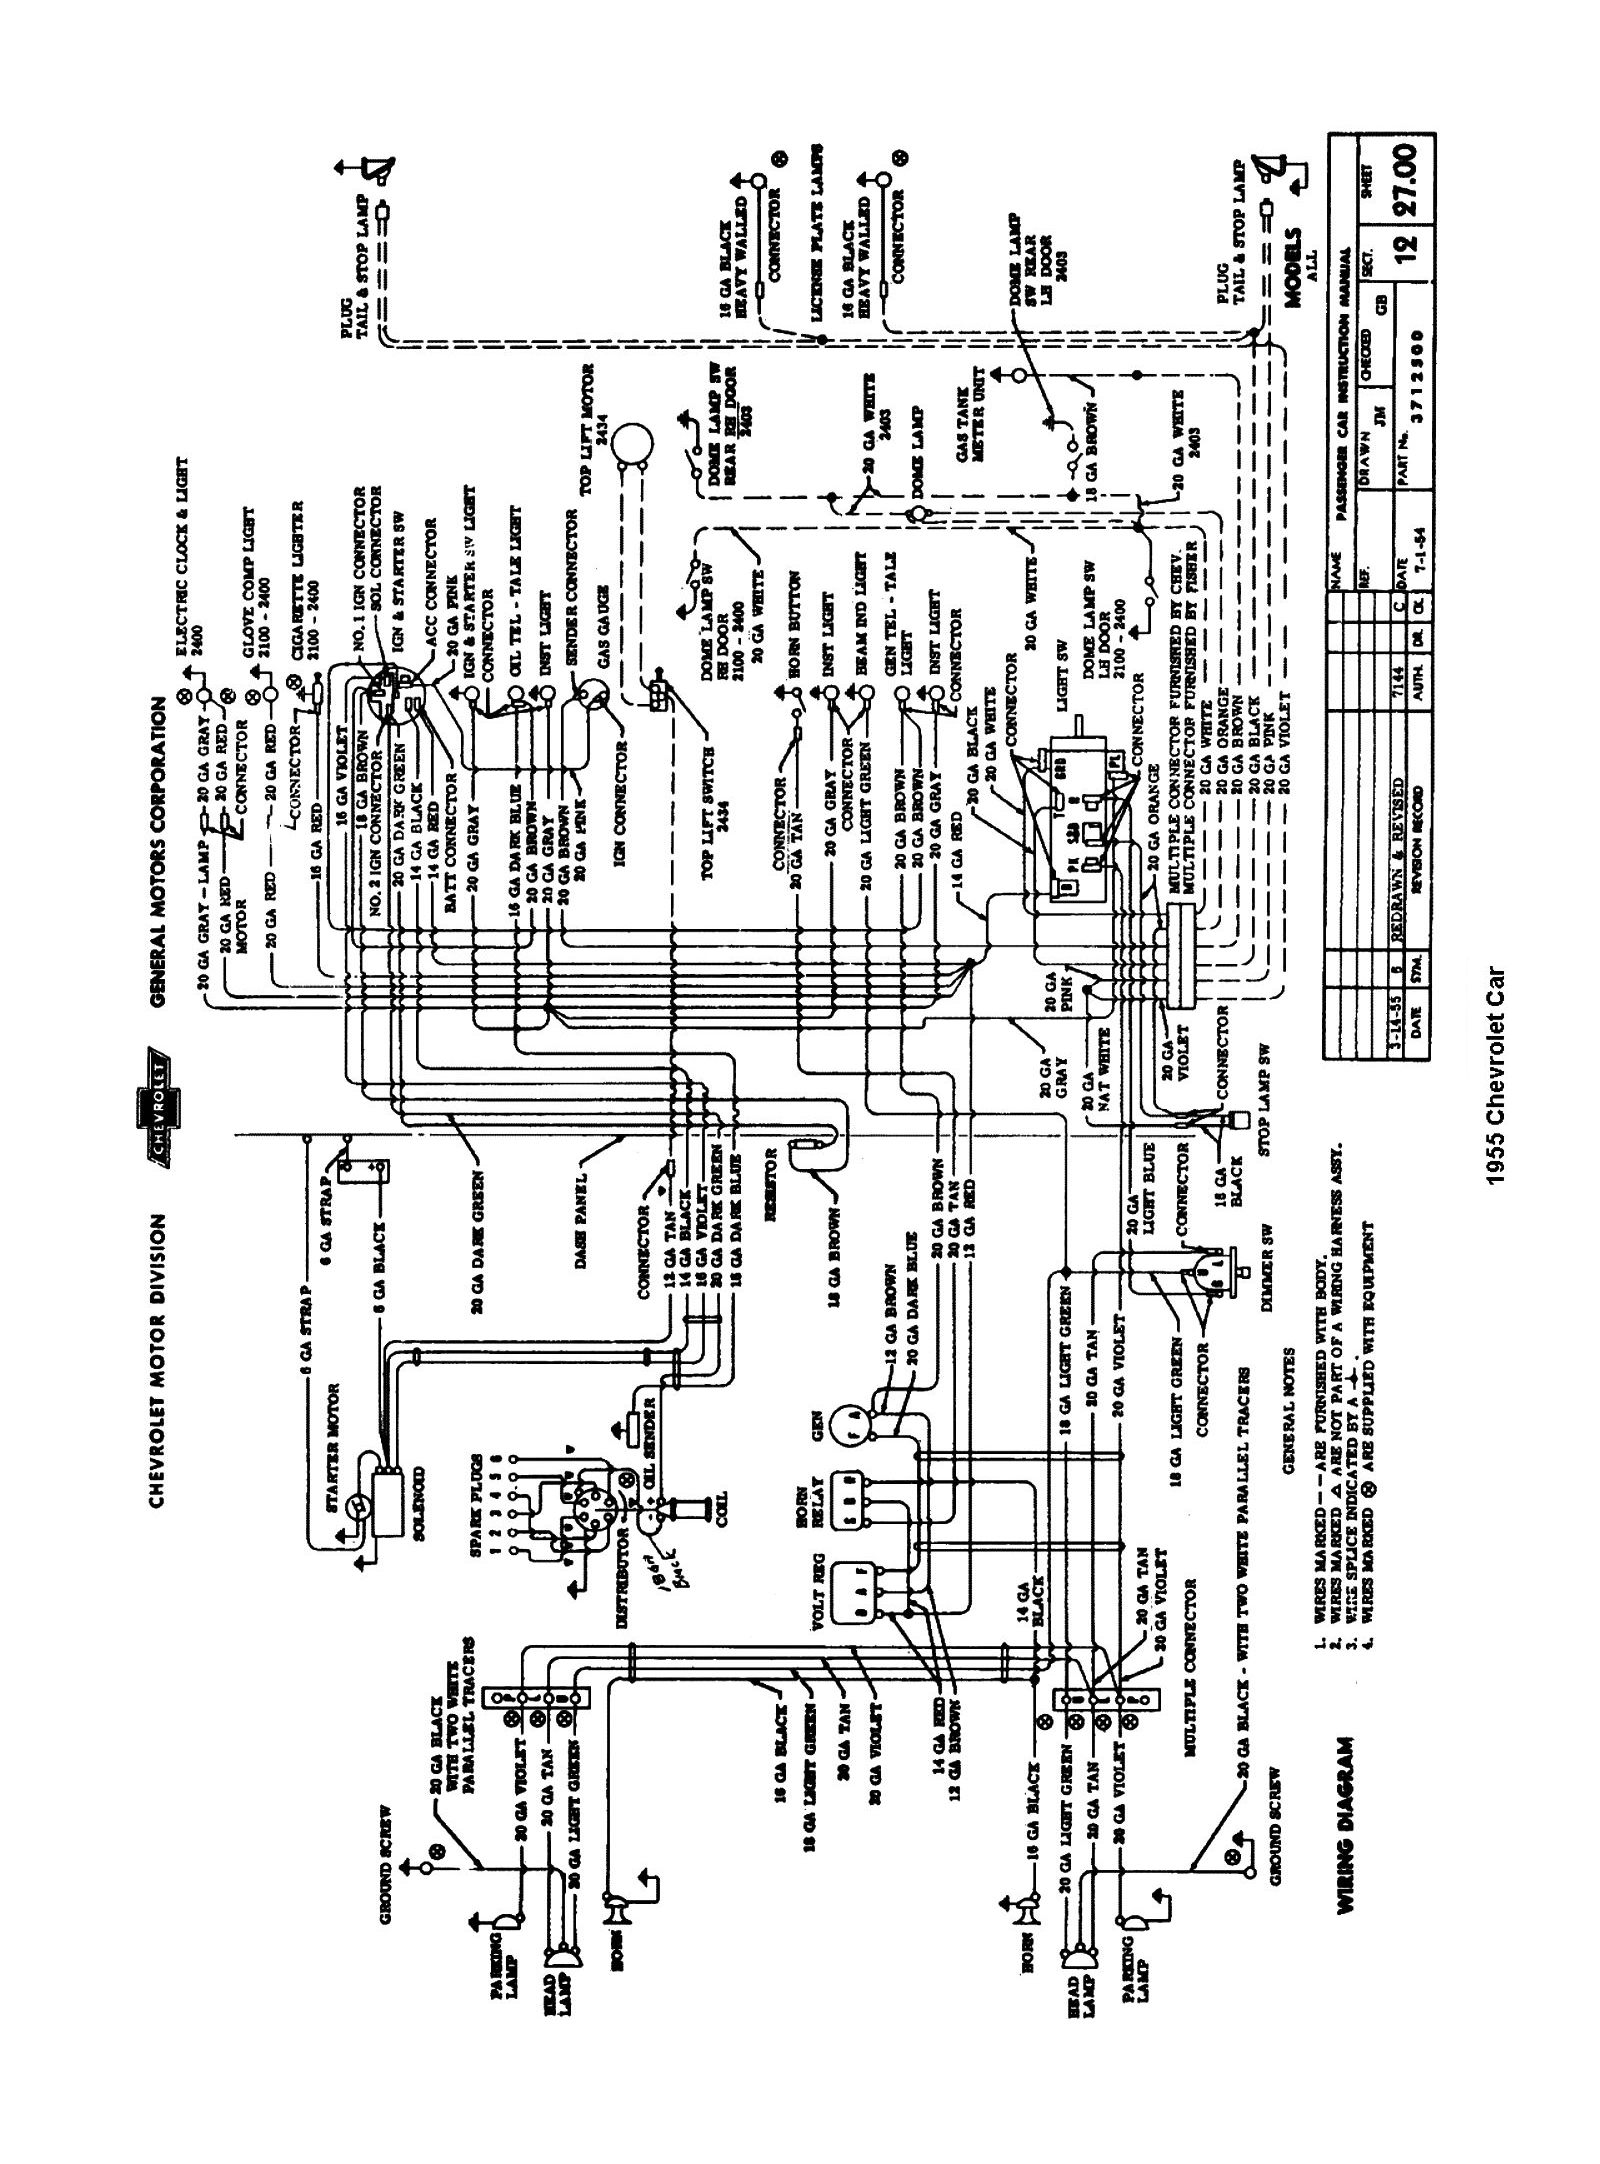 55car1 shop wiring diagram cart wiring diagram \u2022 wiring diagrams j Air 1964 Bel at alyssarenee.co